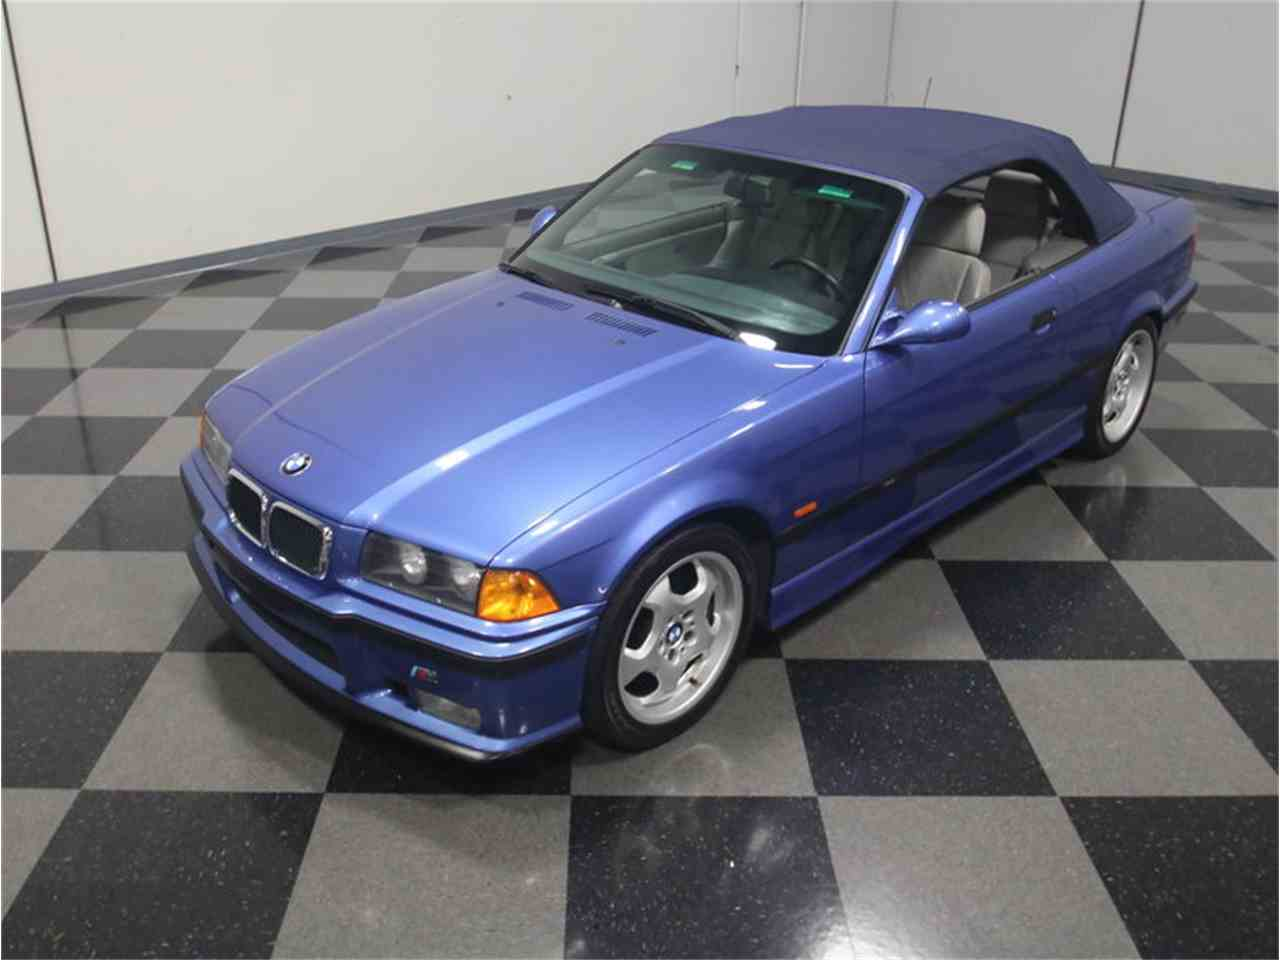 Large Picture of '98 BMW M3 - $11,995.00 Offered by Streetside Classics - Atlanta - LVN8